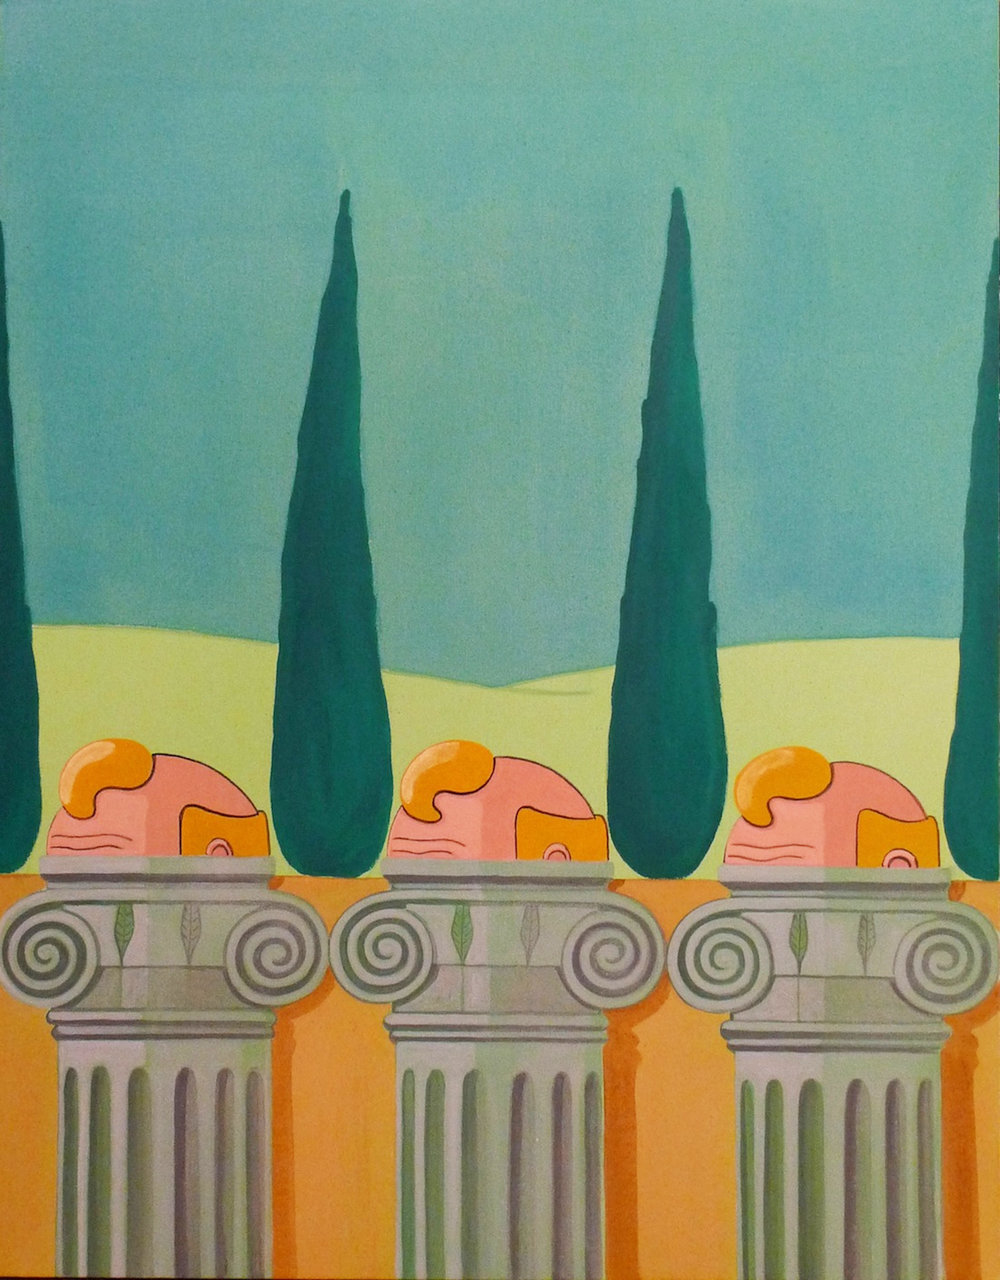 Columns  2014 Acrylic on Canvas, 100 x 78 cm  Private Collection